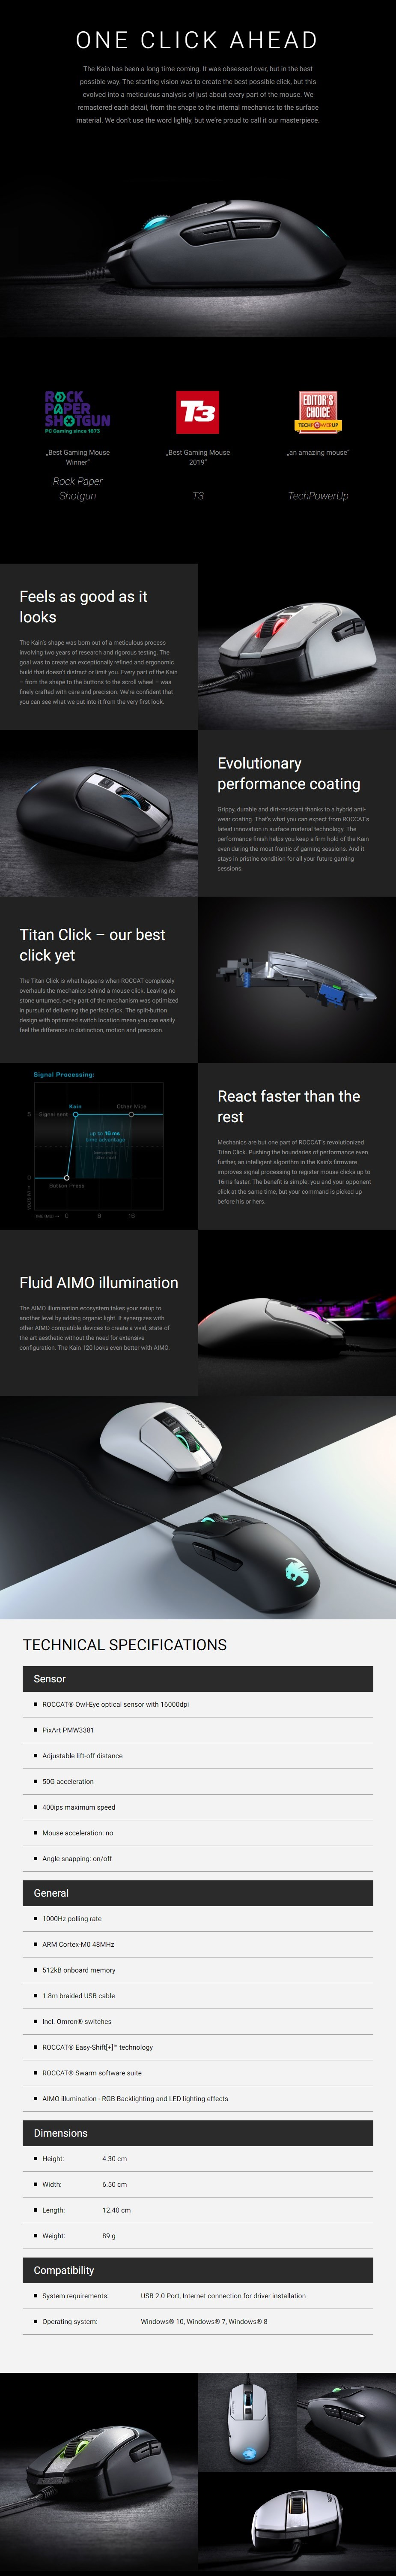 Roccat Kain 122 AIMO RGB Optical Gaming Mouse - White - Overview 1